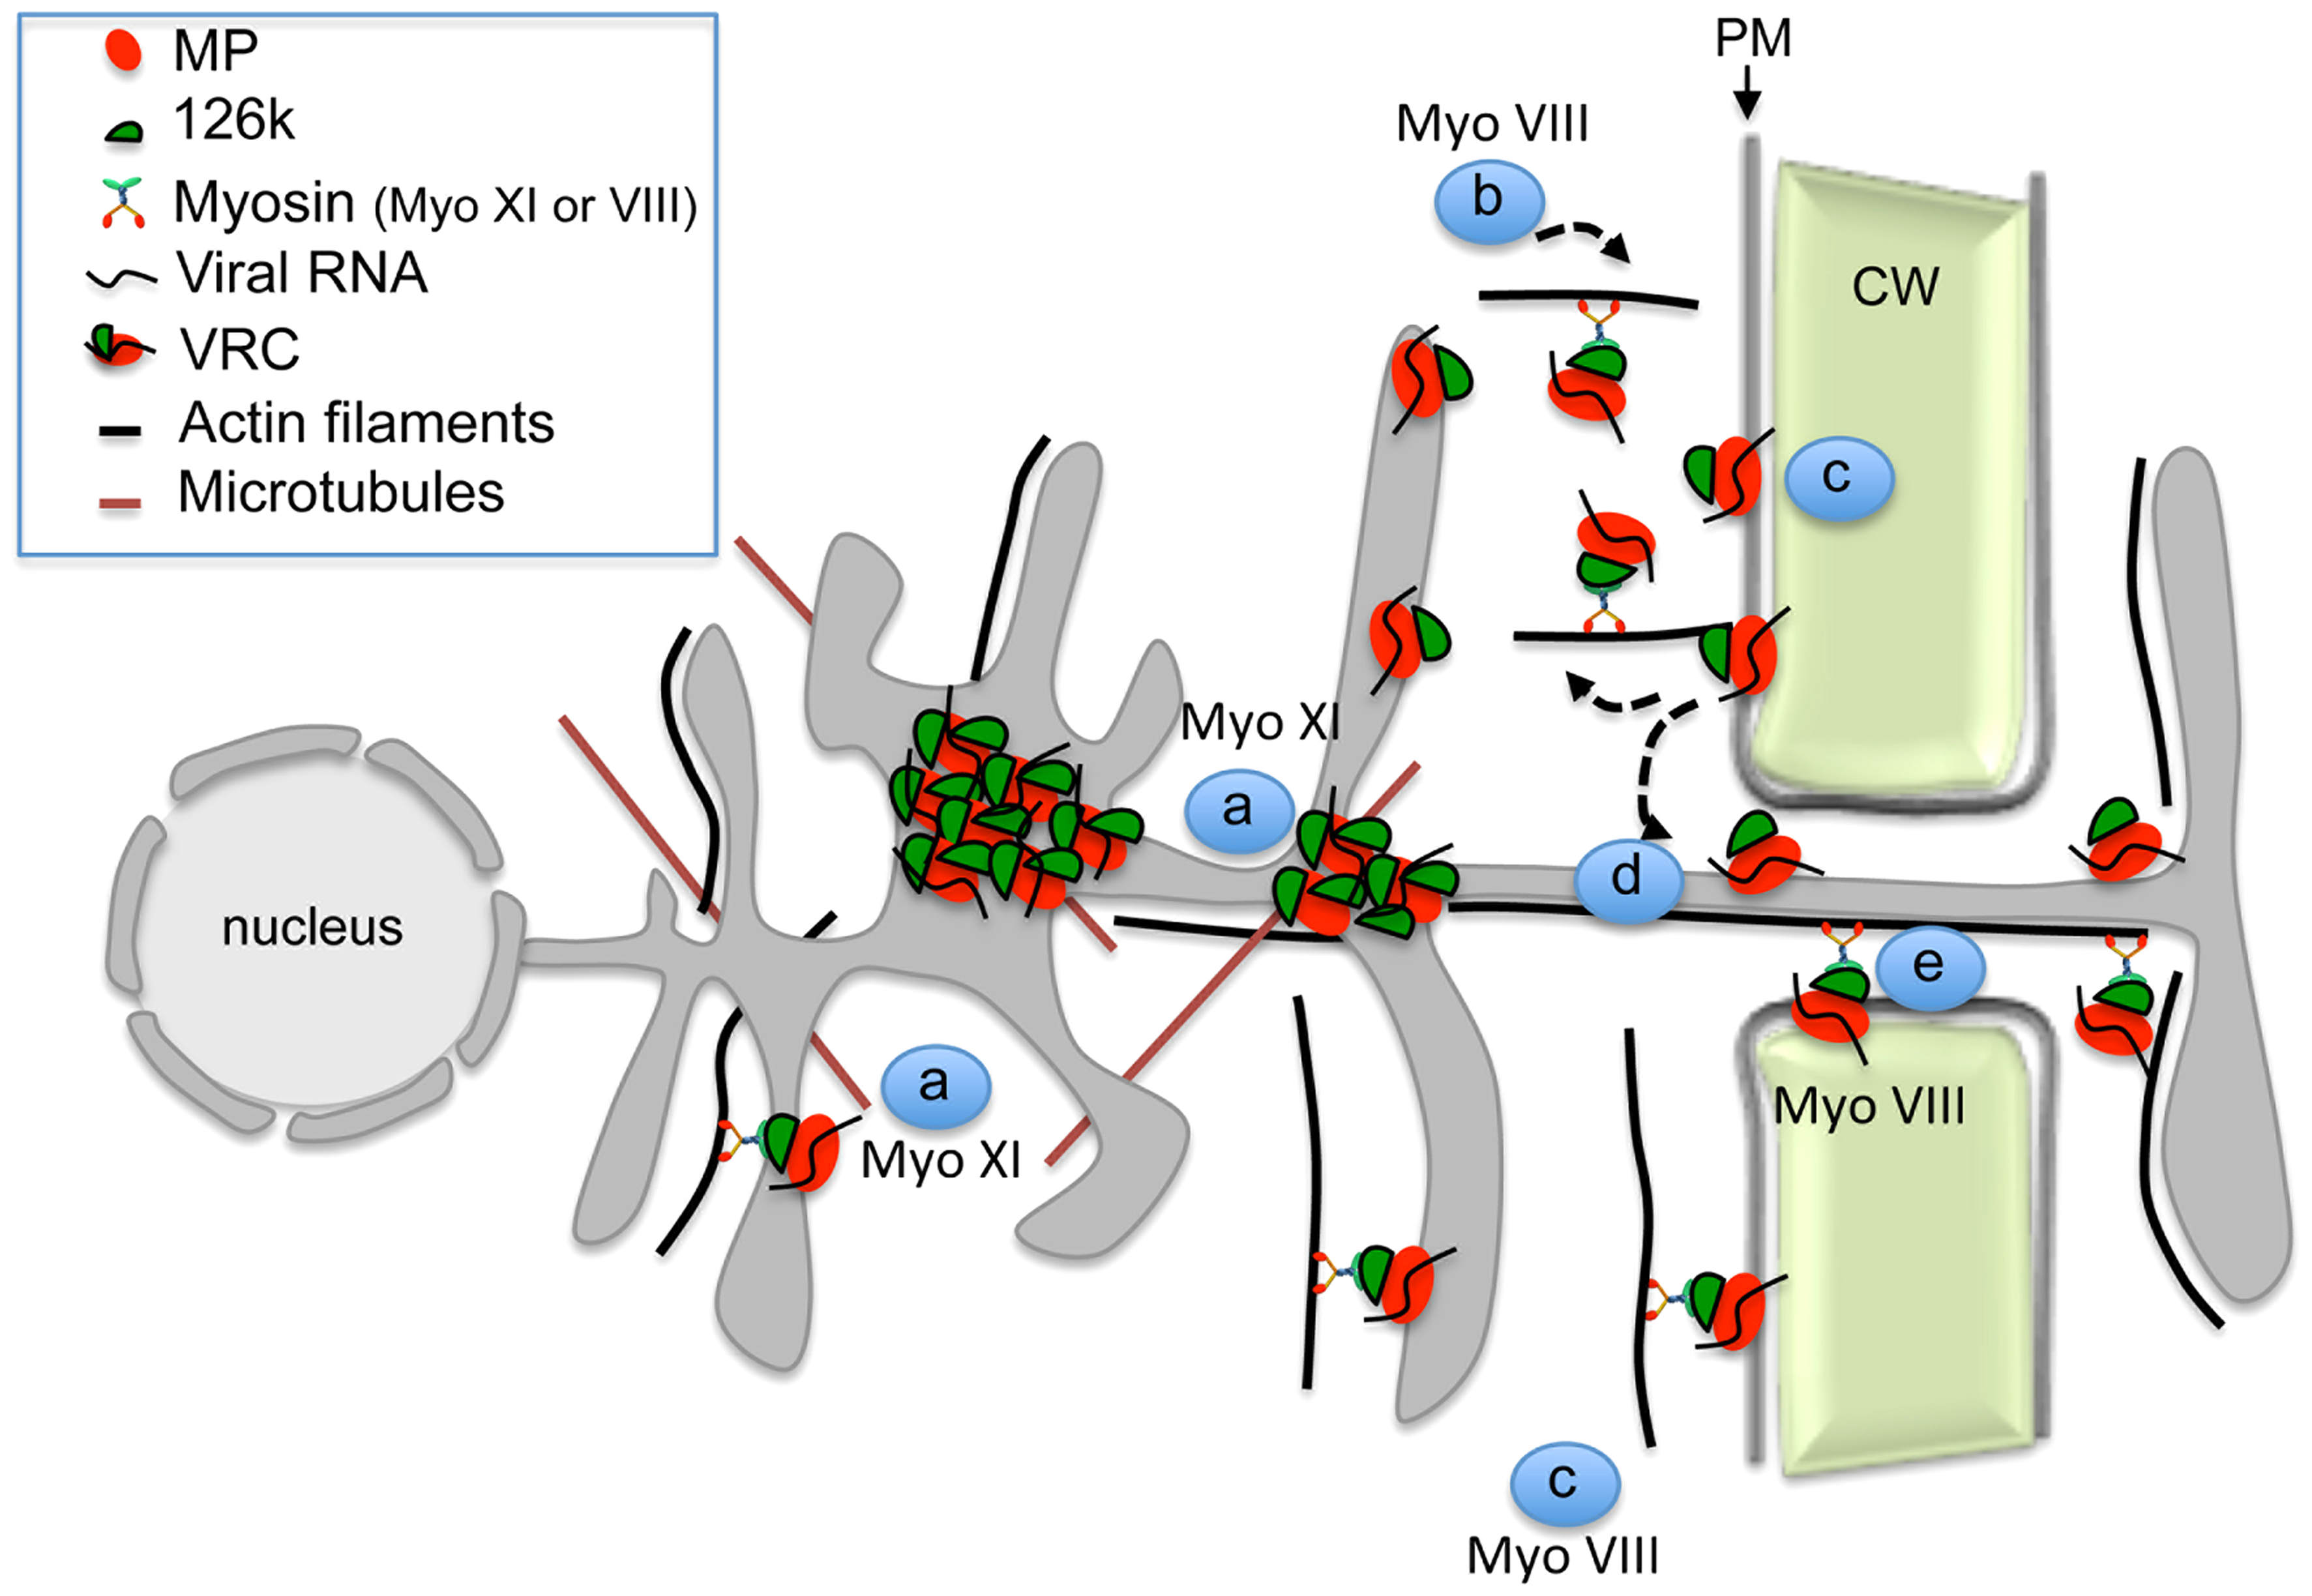 Model illustrating the role of the actomyosin system in the intra- and intercellular movement of TMV.